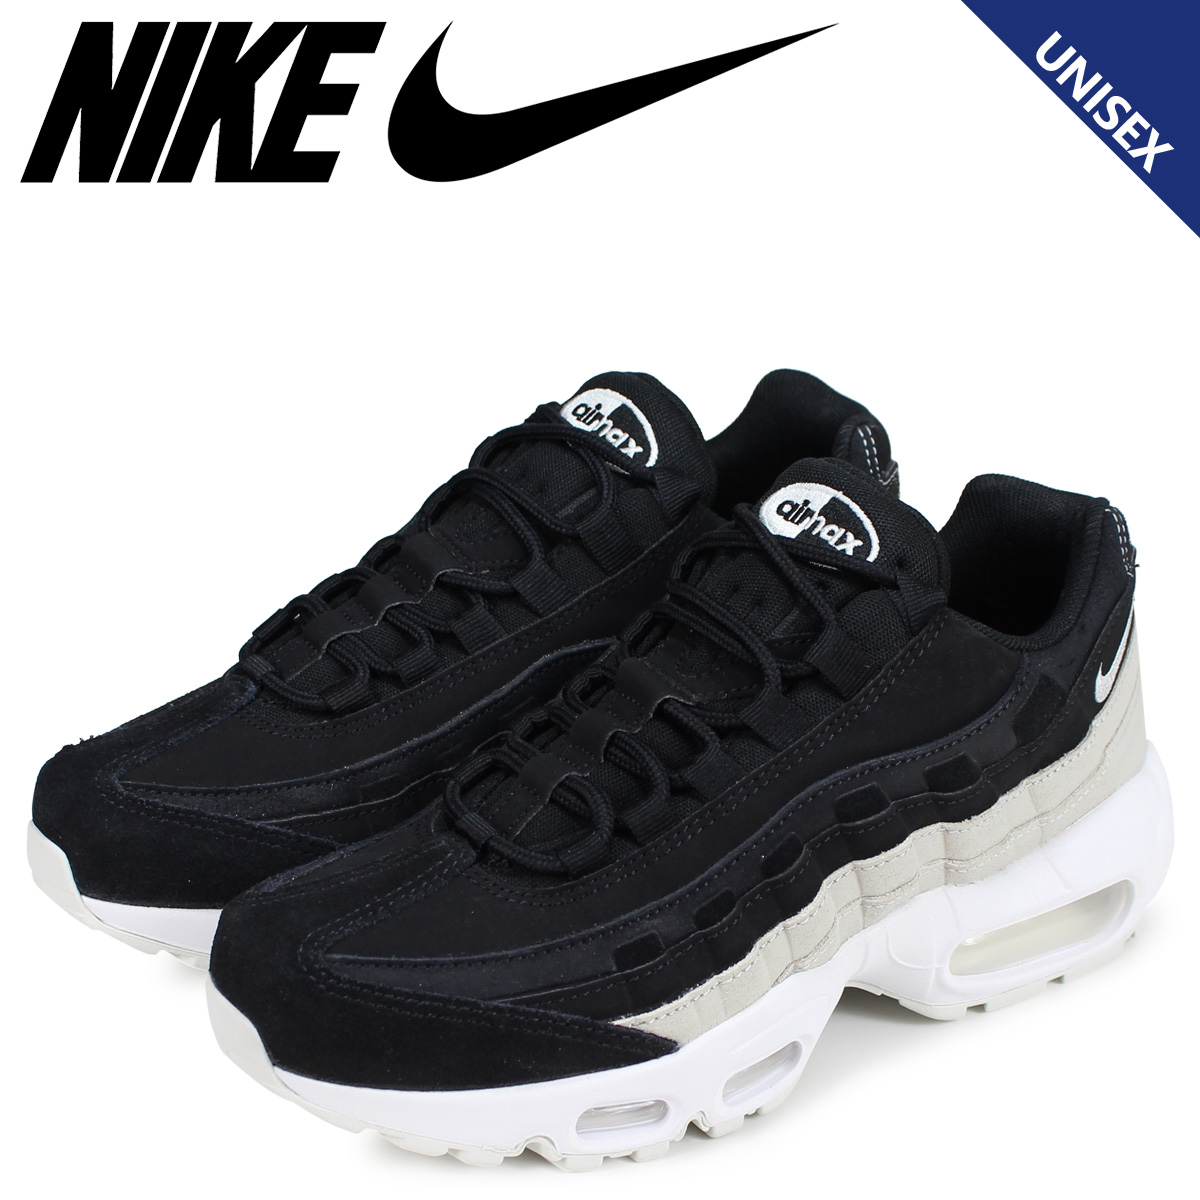 release date: 73c9a 67816 NIKE Kie Ney AMAX 95 sneakers Ladys men WMNS AIR MAX 95 PREMIUM black  807,443-017 load planned Shinnyu load in reservation product 38  containing